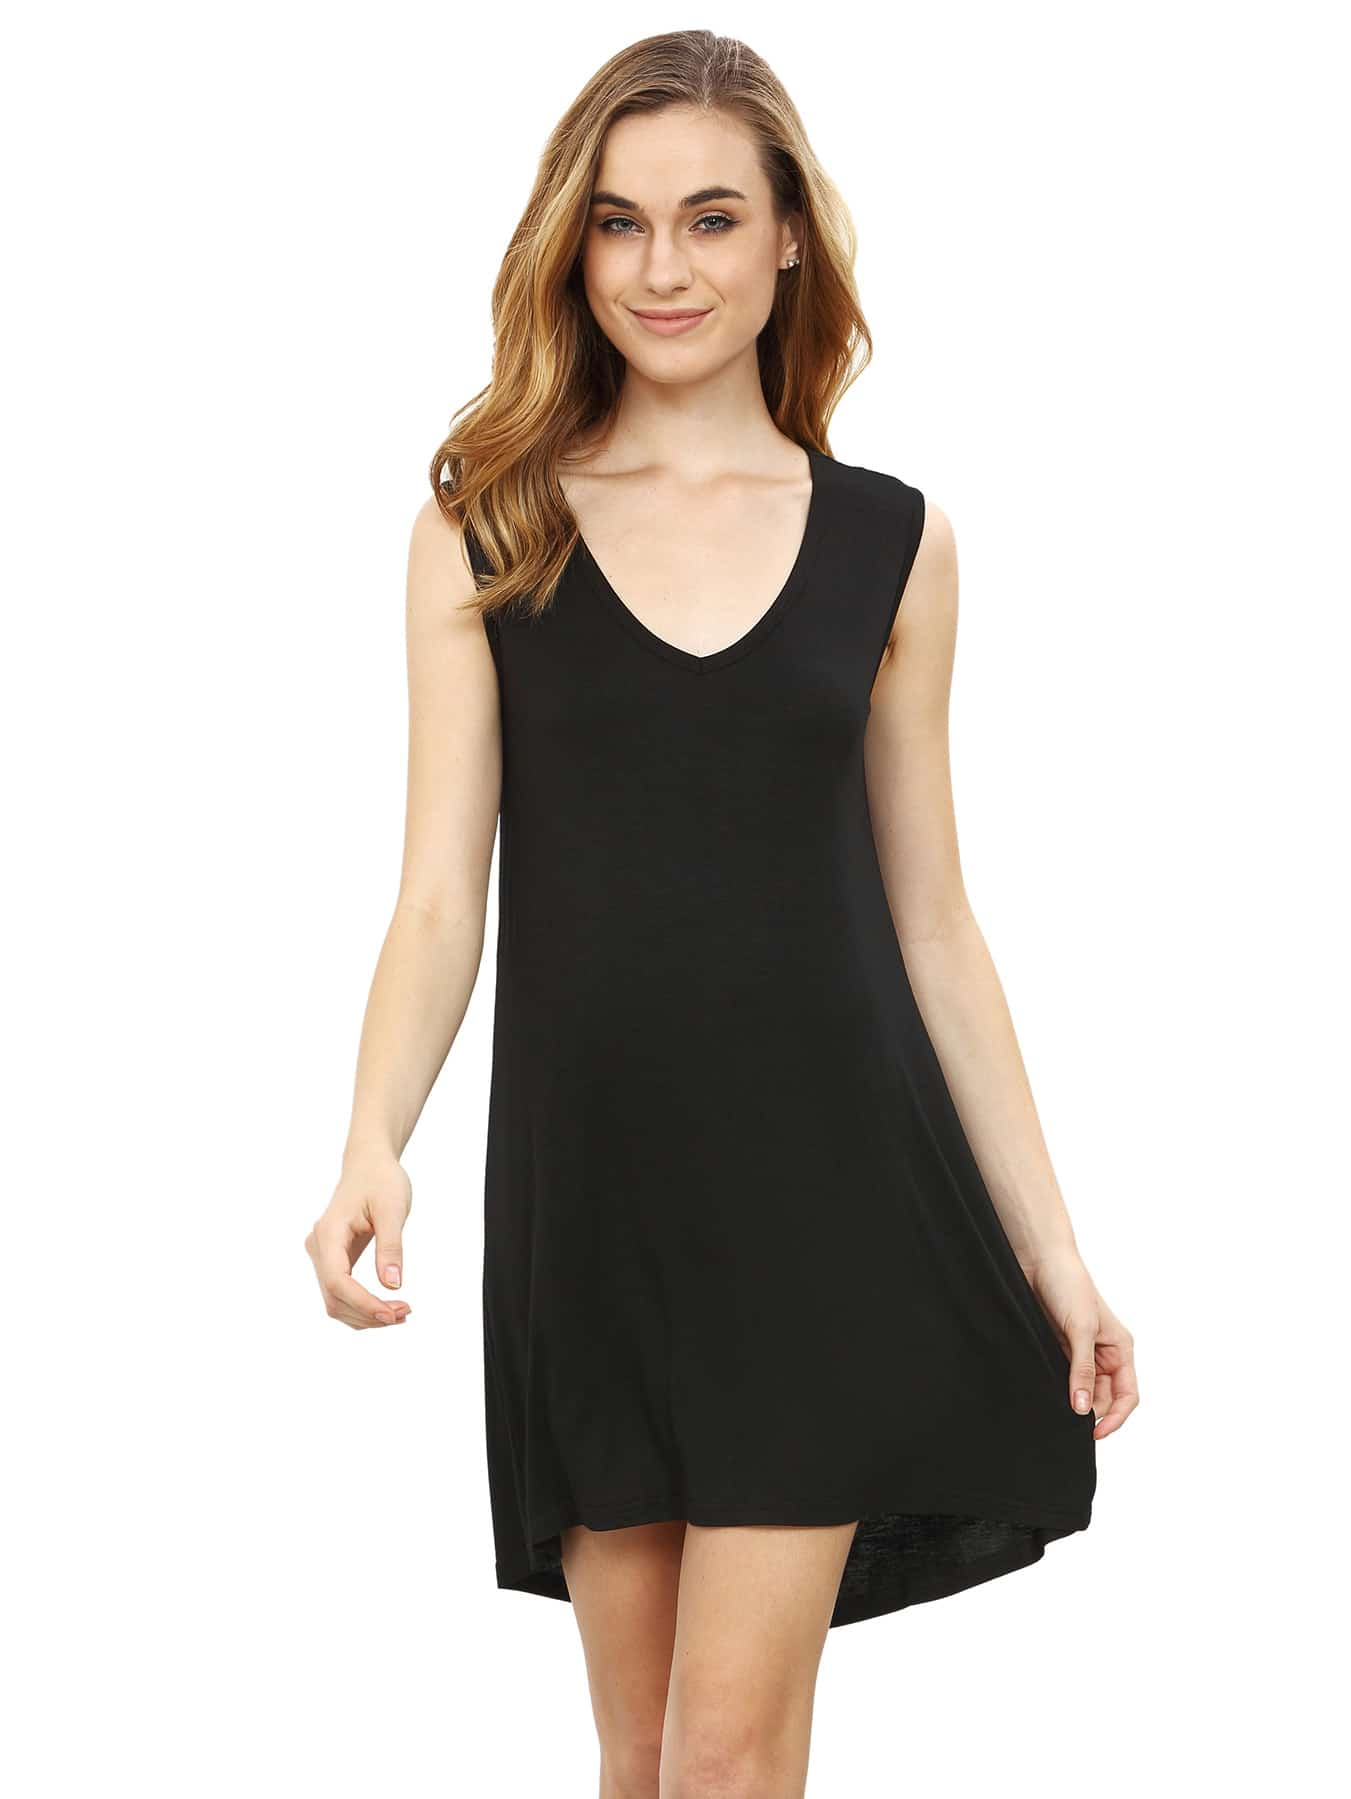 Black Minis Sleeveless Vest Casual Dress dress160513780